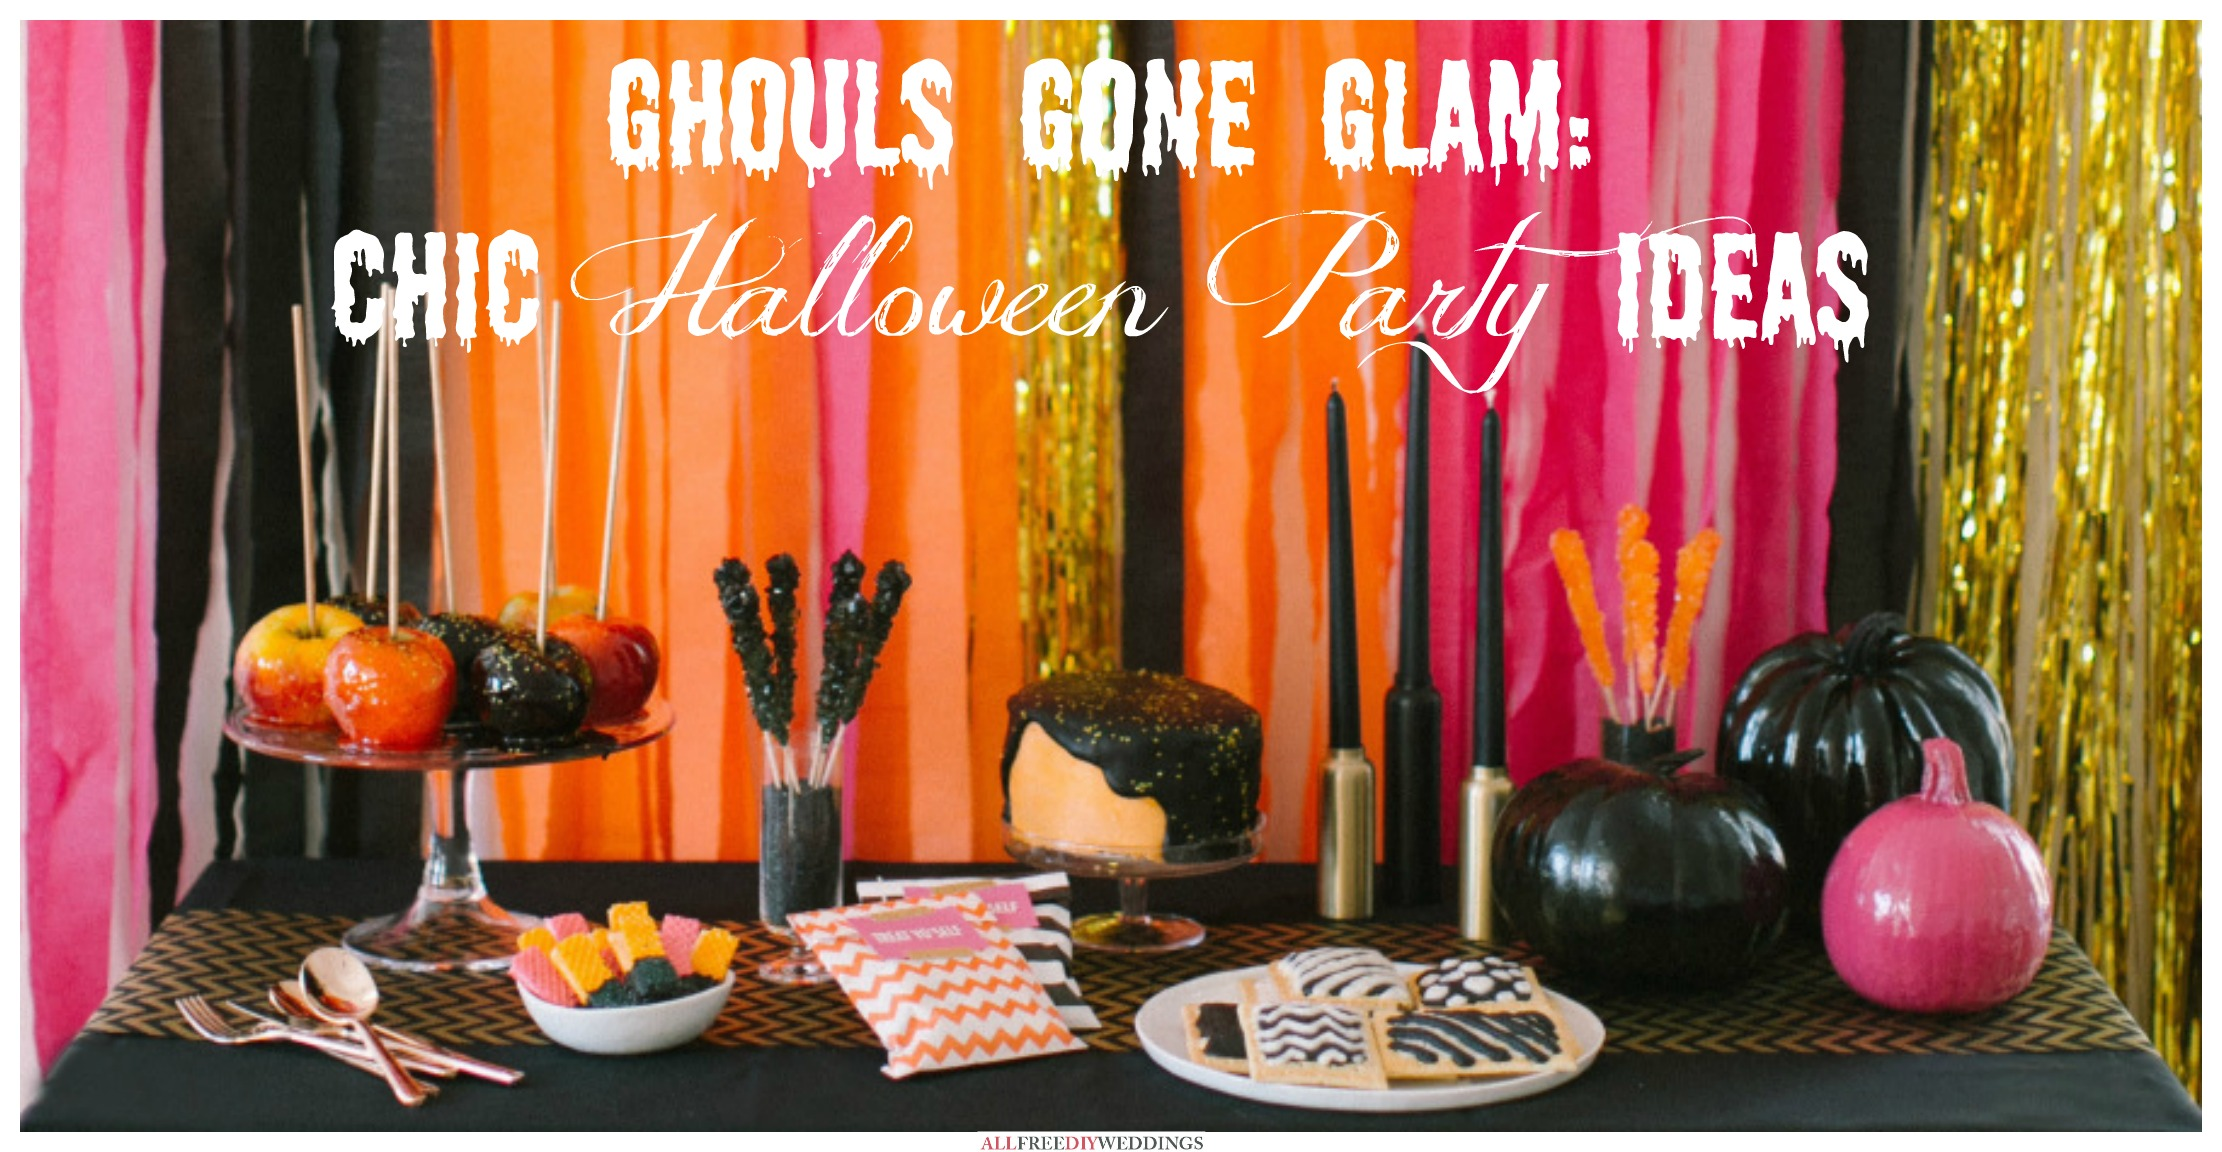 ghouls-gone-glam-halloween-party-ideas